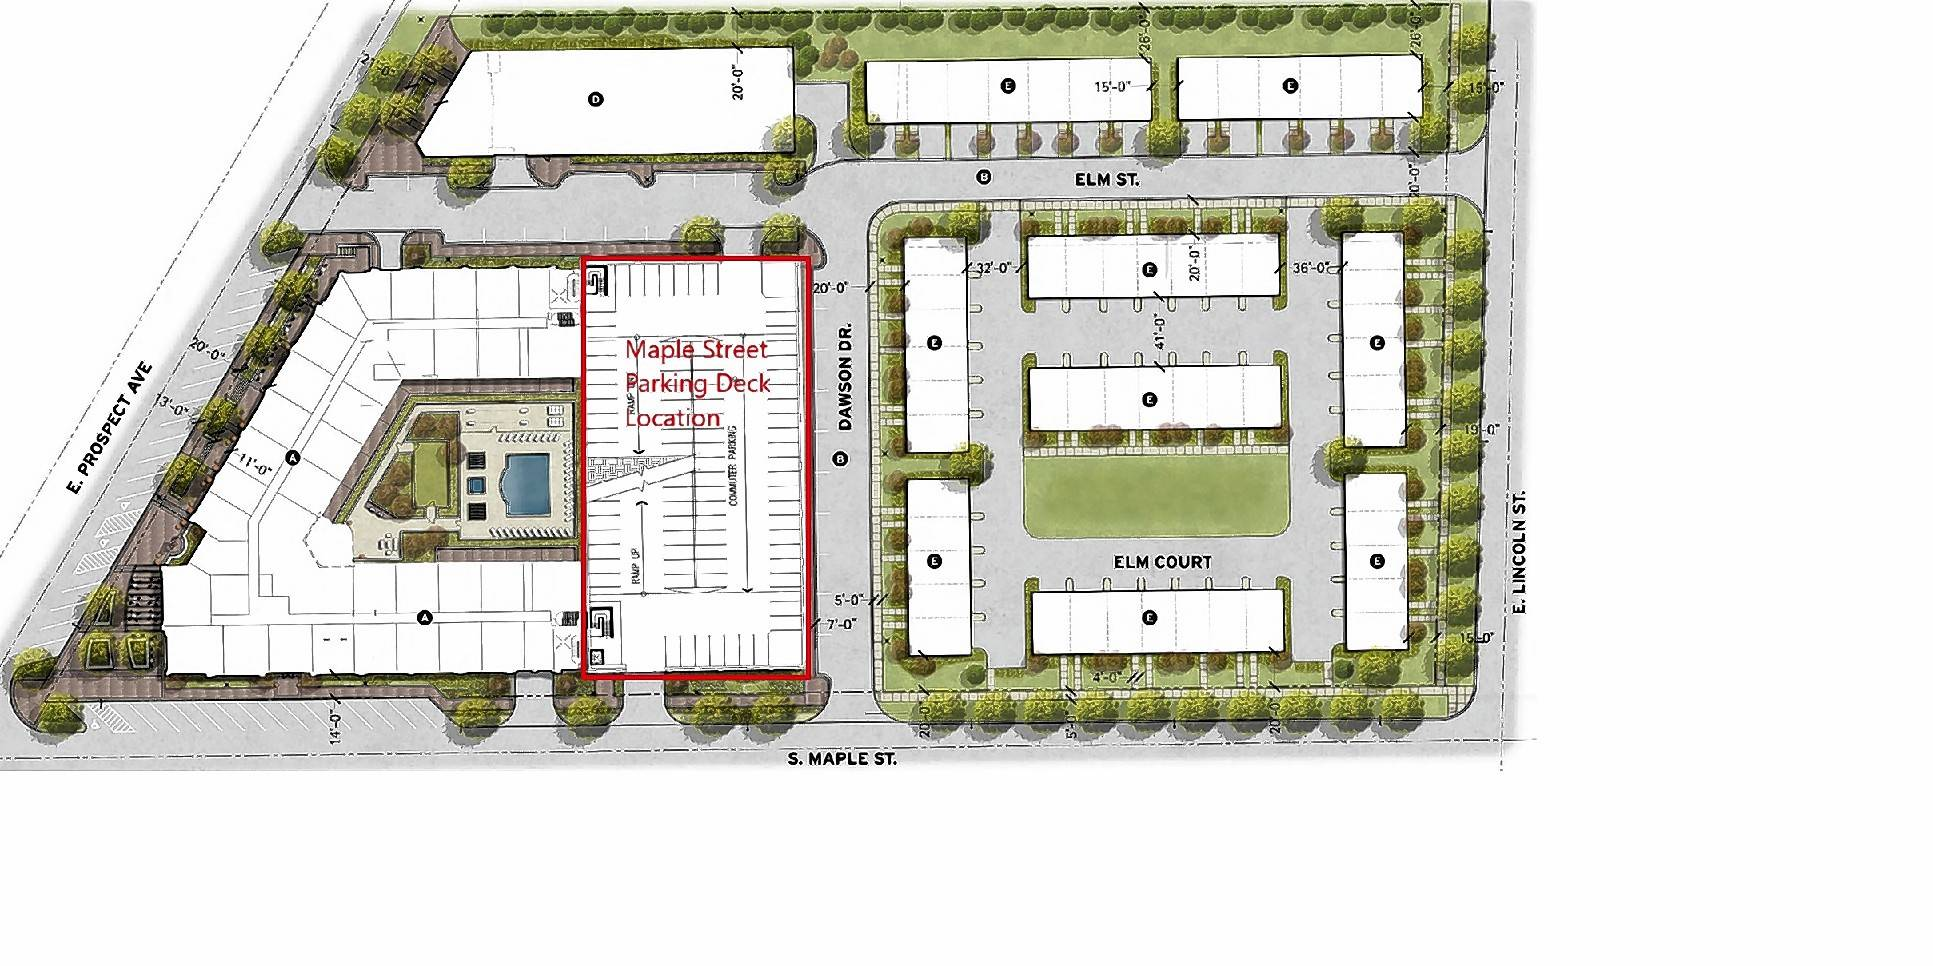 Mount Prospect village trustees this week hired a Hoffman Estates firm to design a new, 268-space parking deck southeast of the village's Metra station.